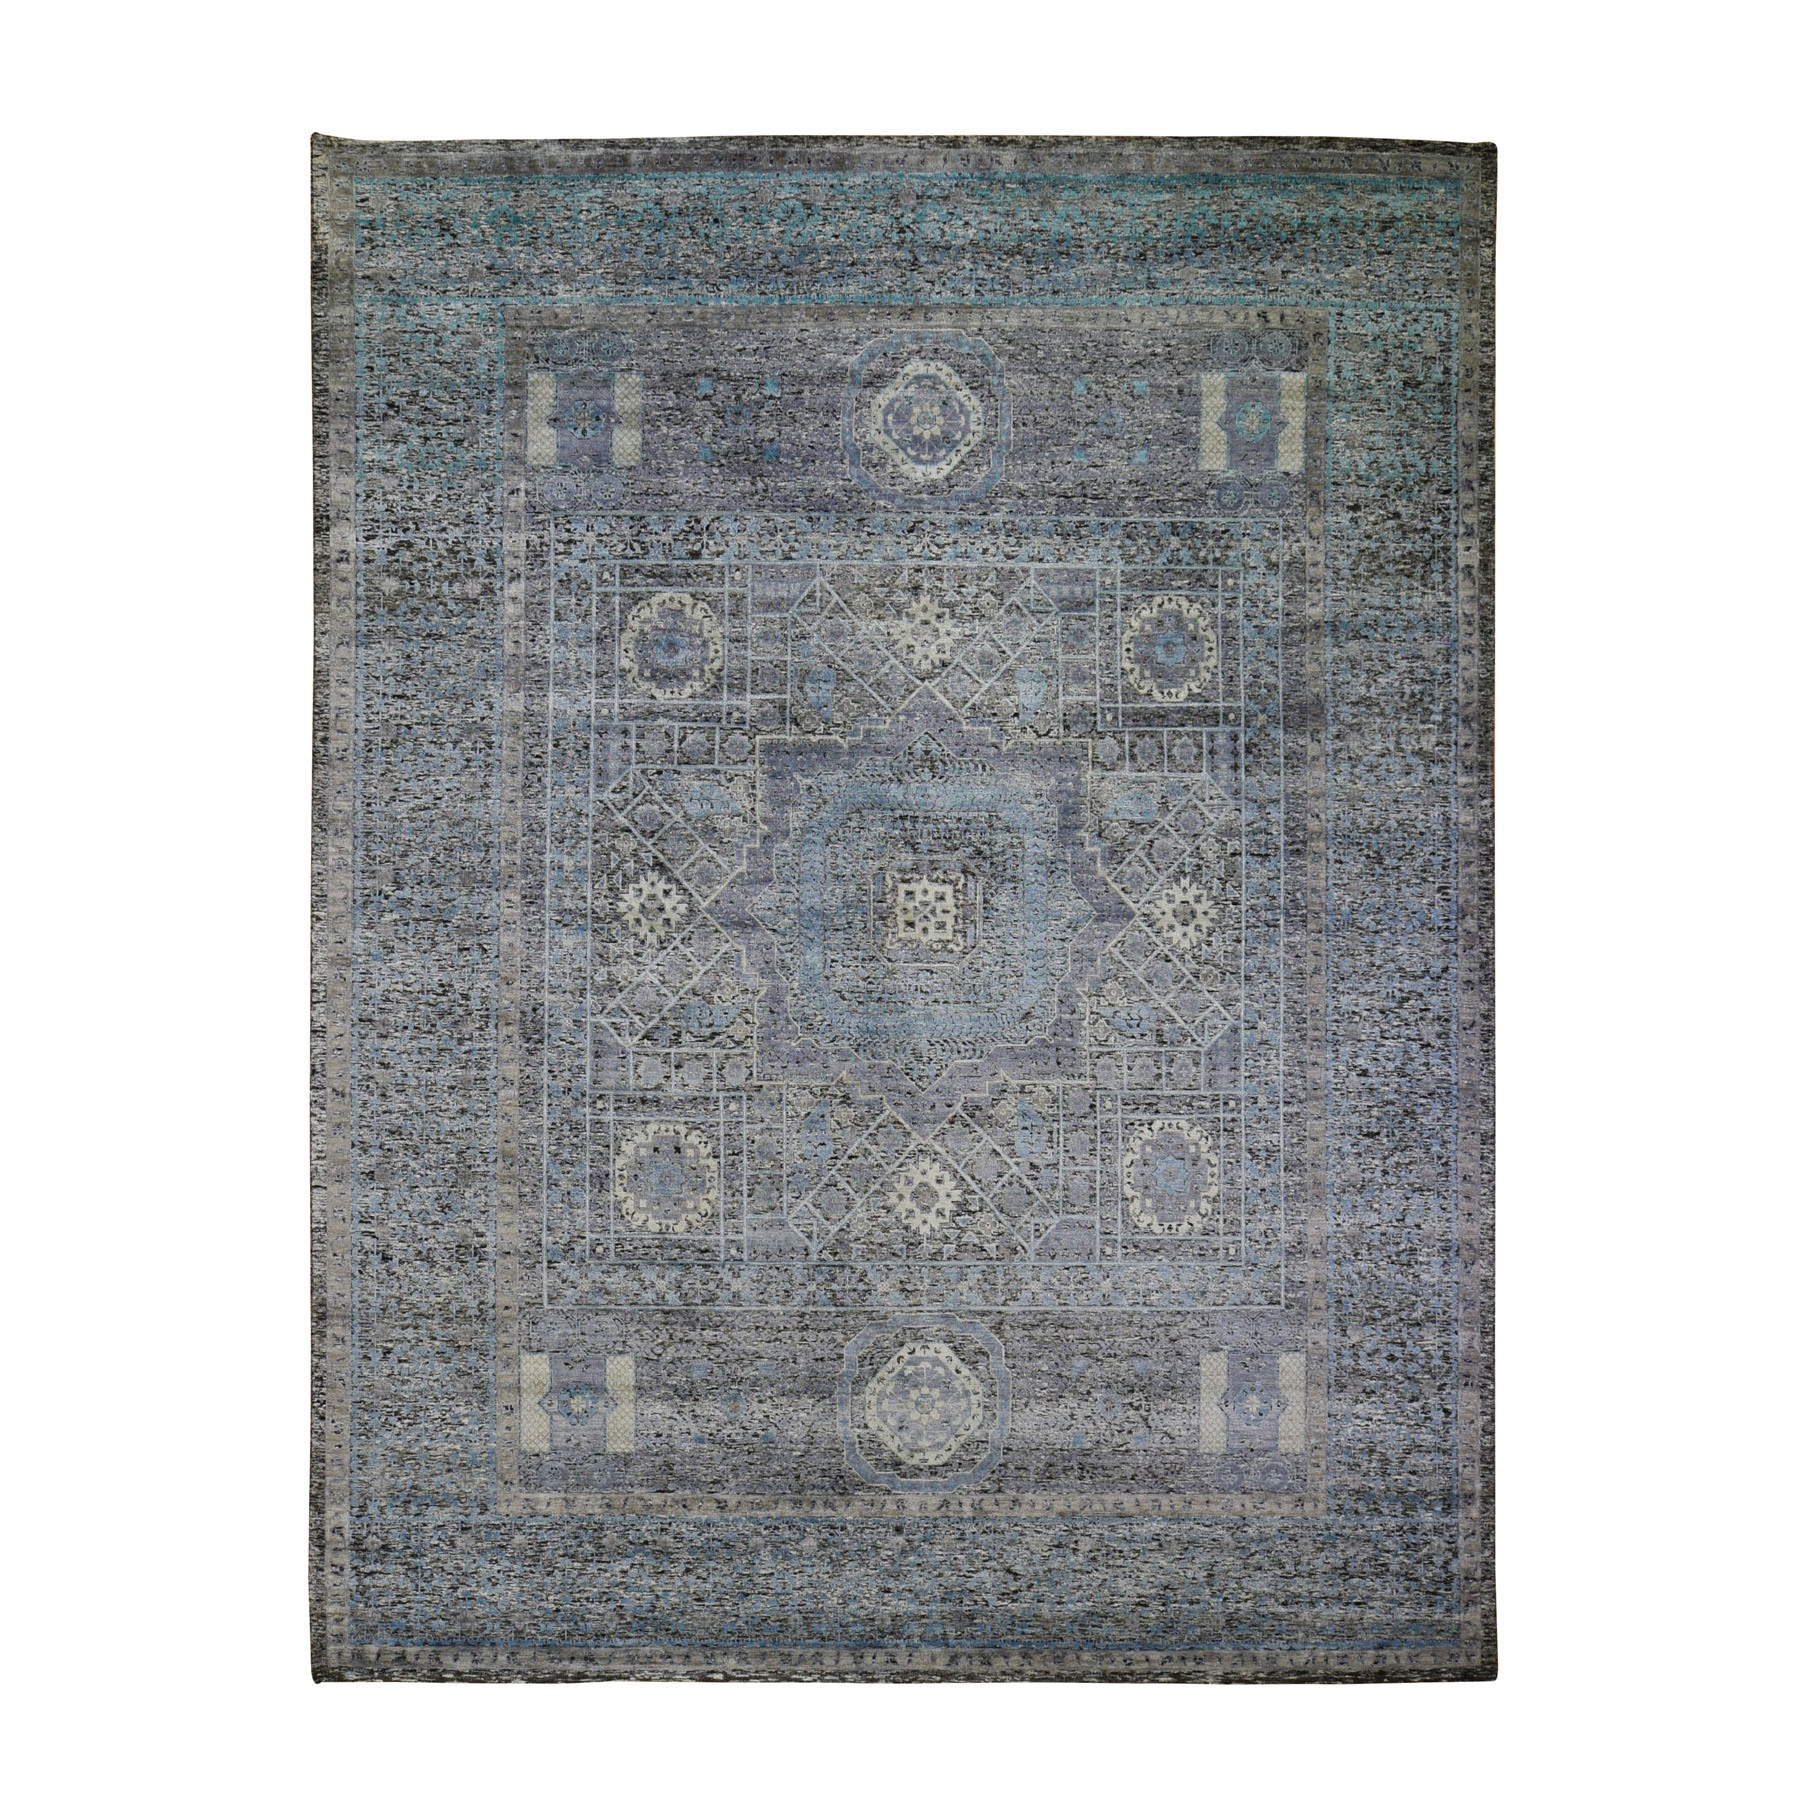 Intricate Collection Hand Knotted Black Rug No: 0198732